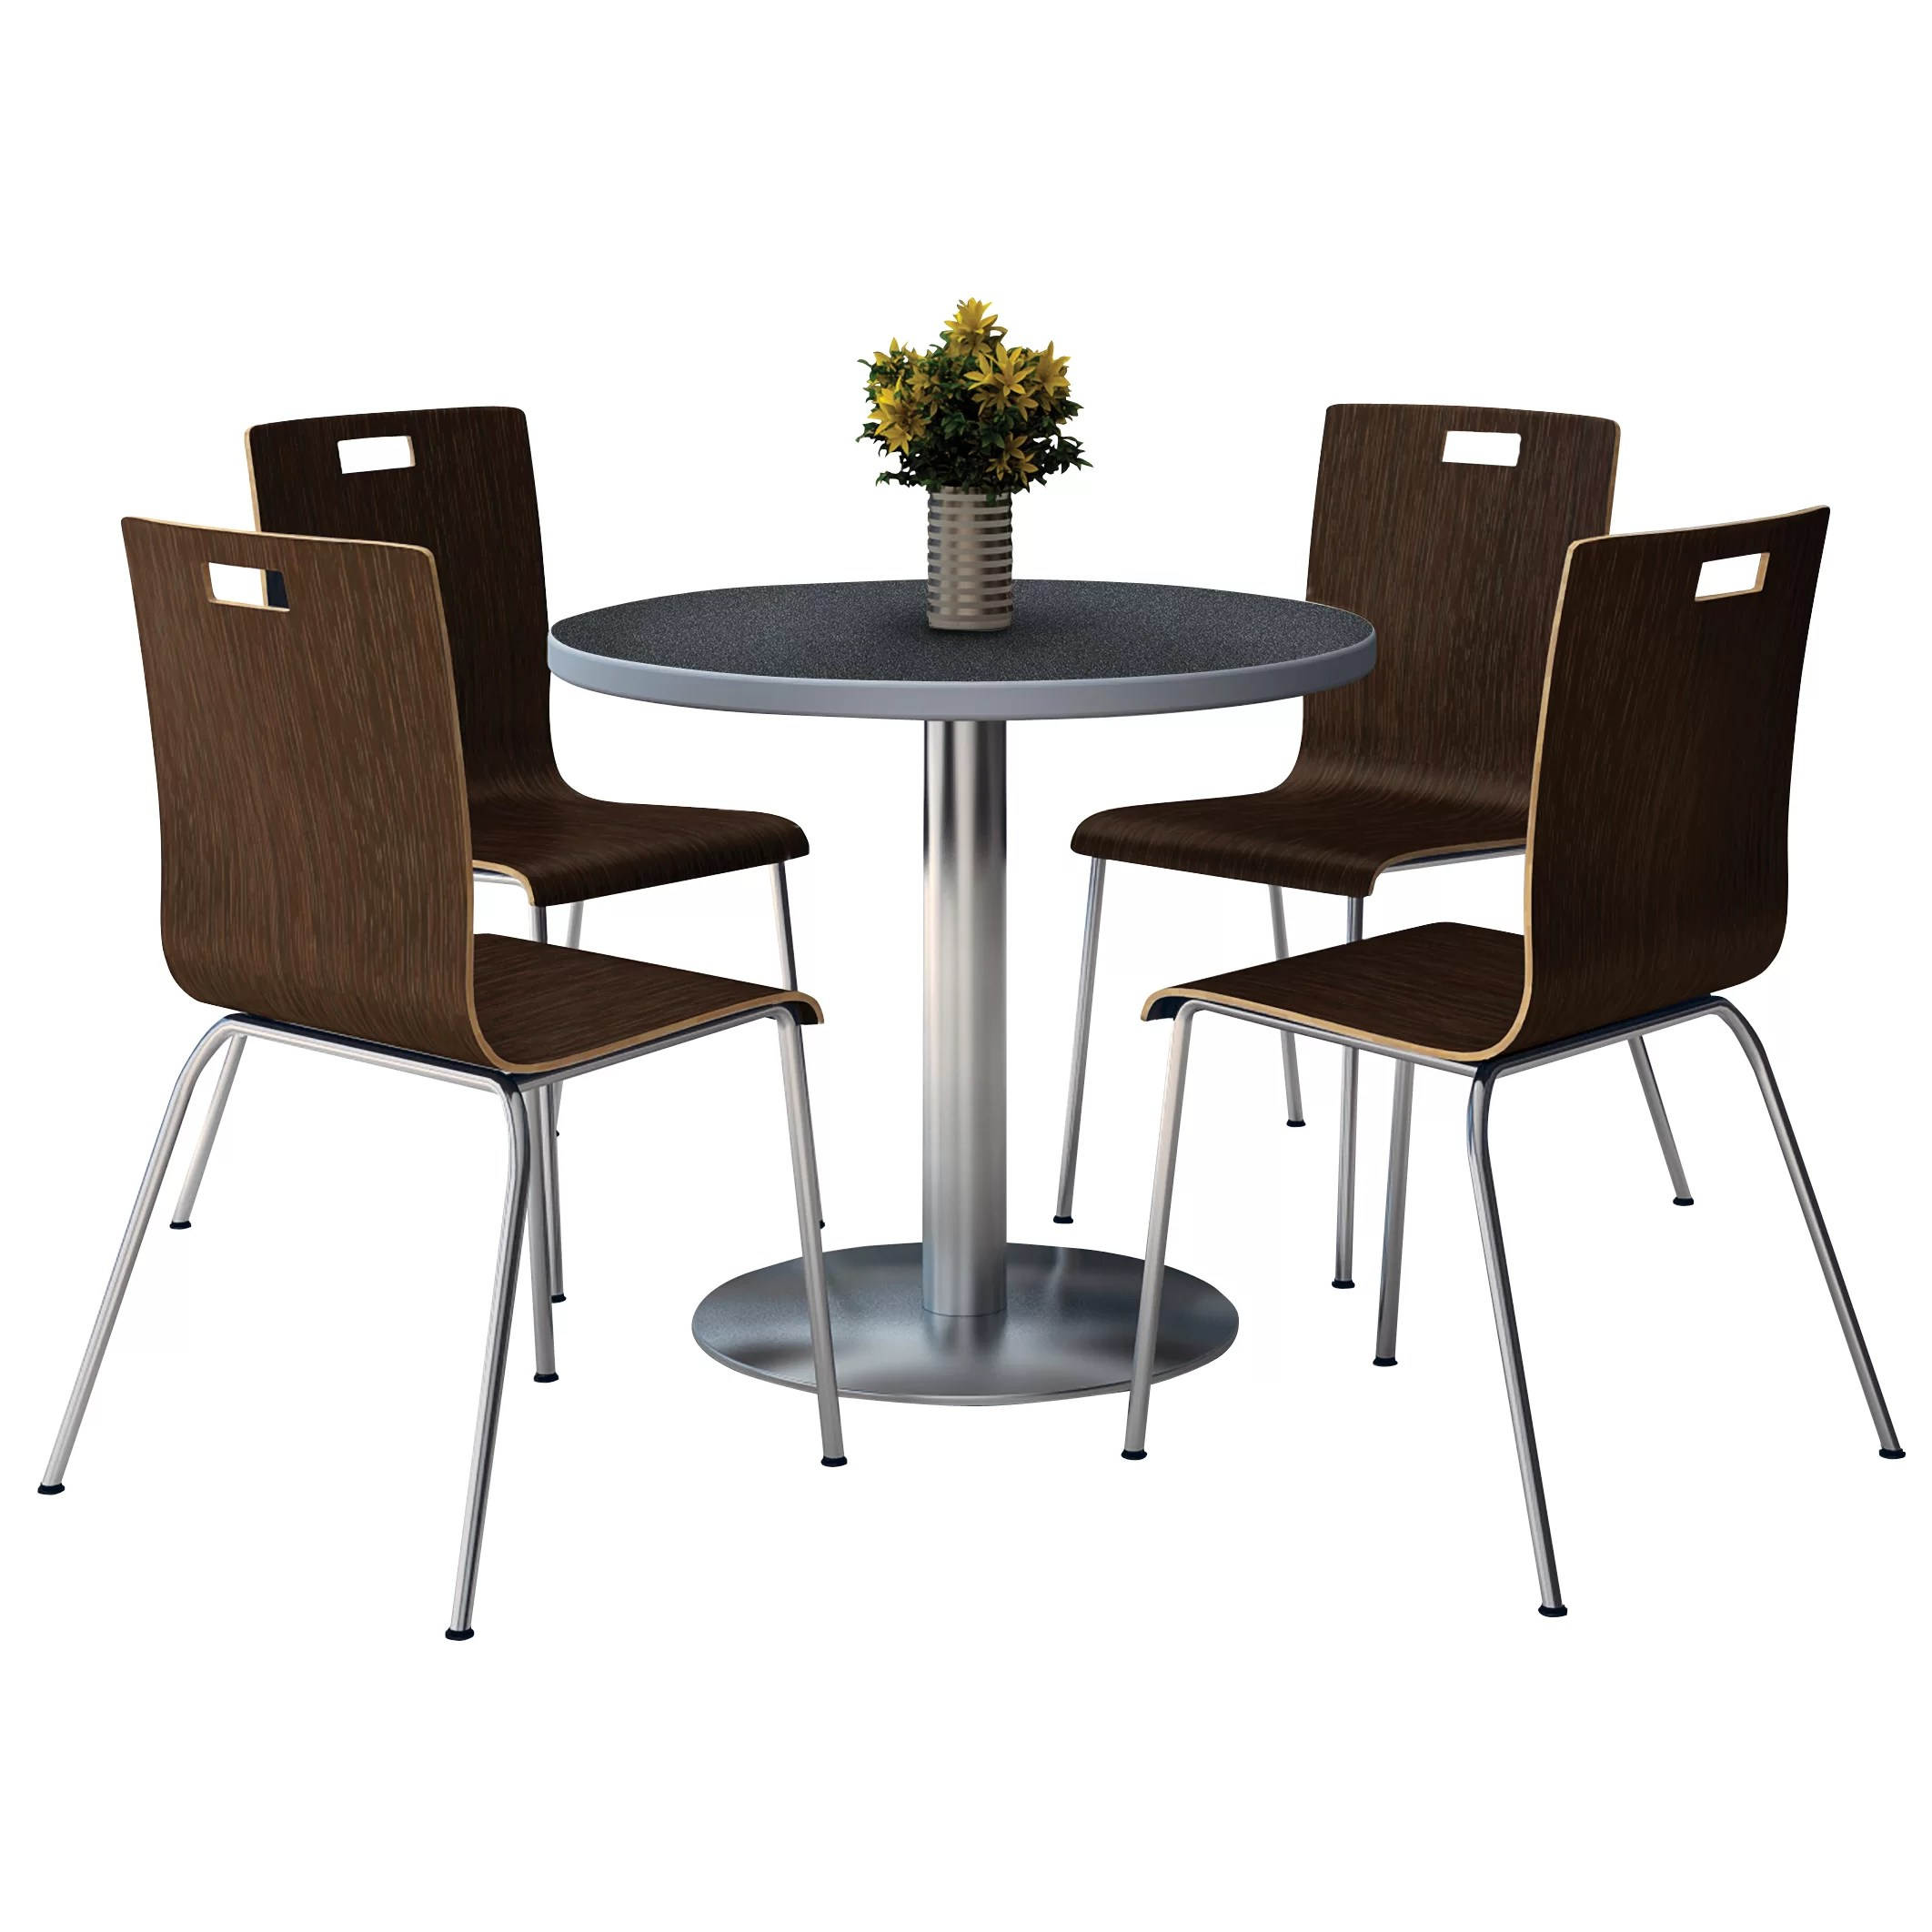 Round Table And Chair Set Kfi Seating Round Cafeteria Table And Chair Set Wayfair